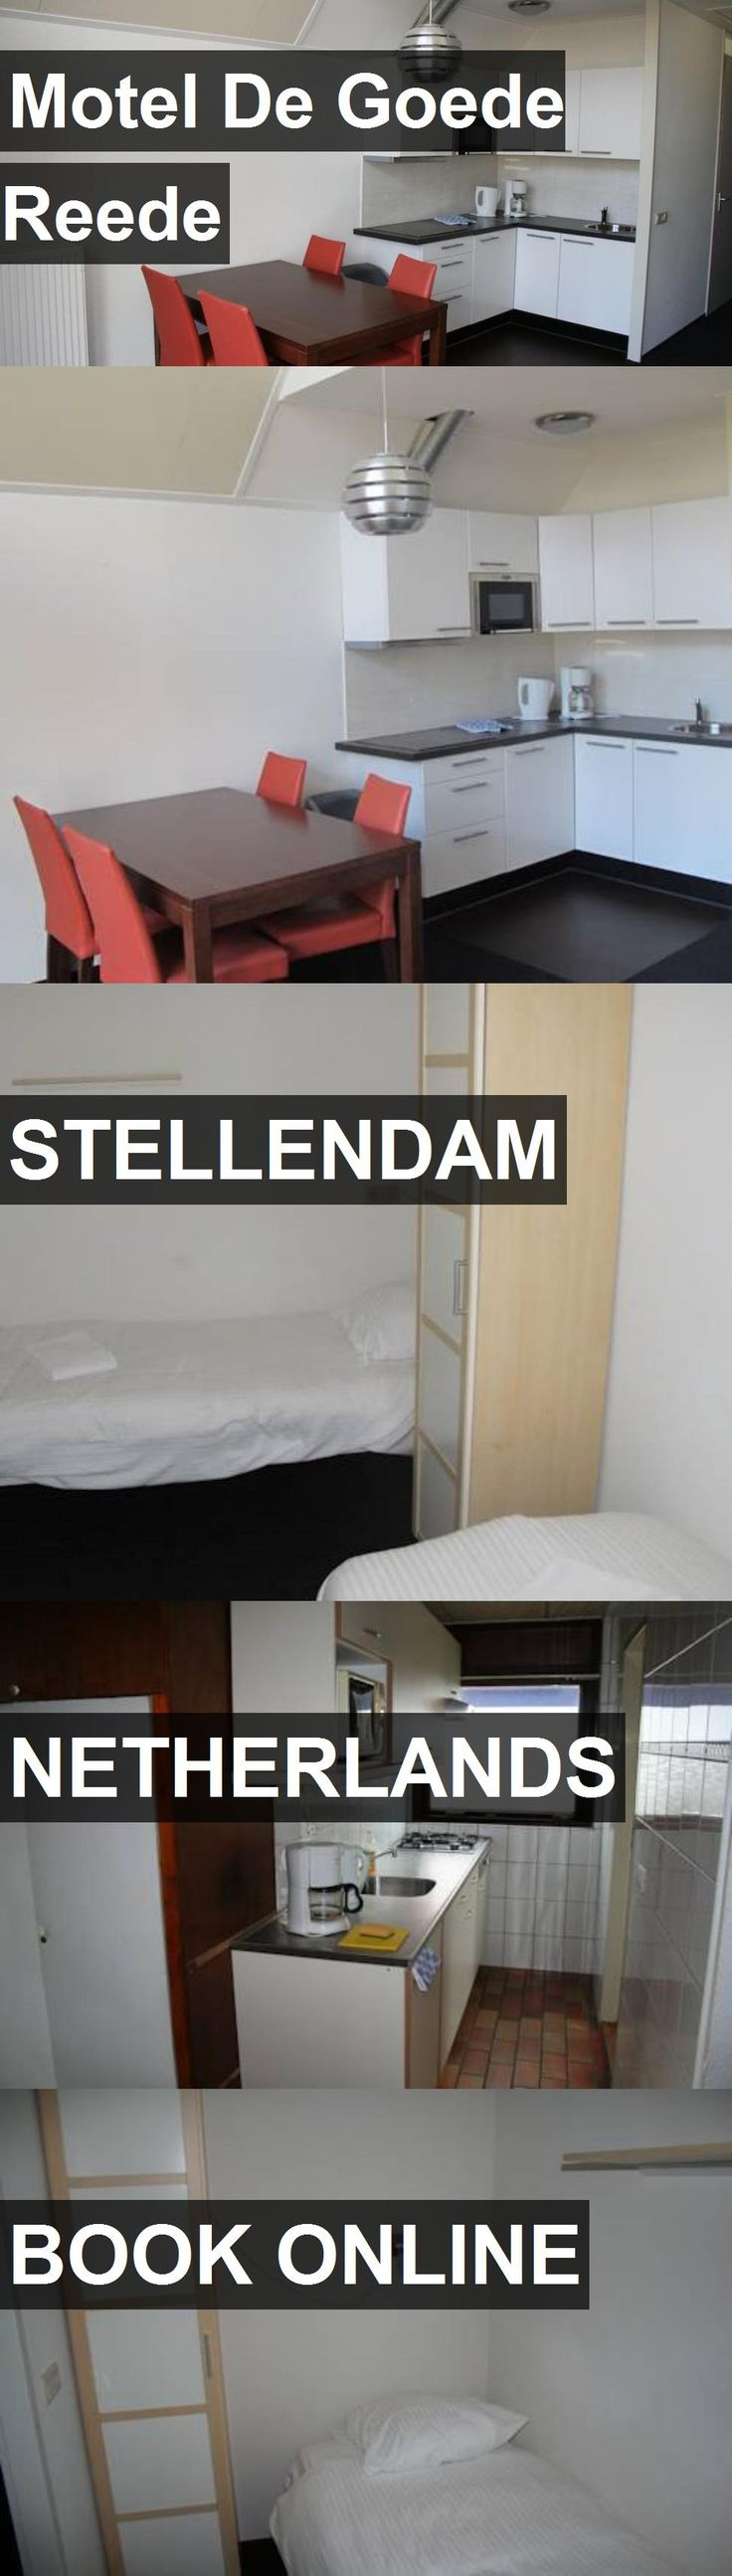 Hotel Motel De Goede Reede in Stellendam, Netherlands. For more information, photos, reviews and best prices please follow the link. #Netherlands #Stellendam #travel #vacation #hotel